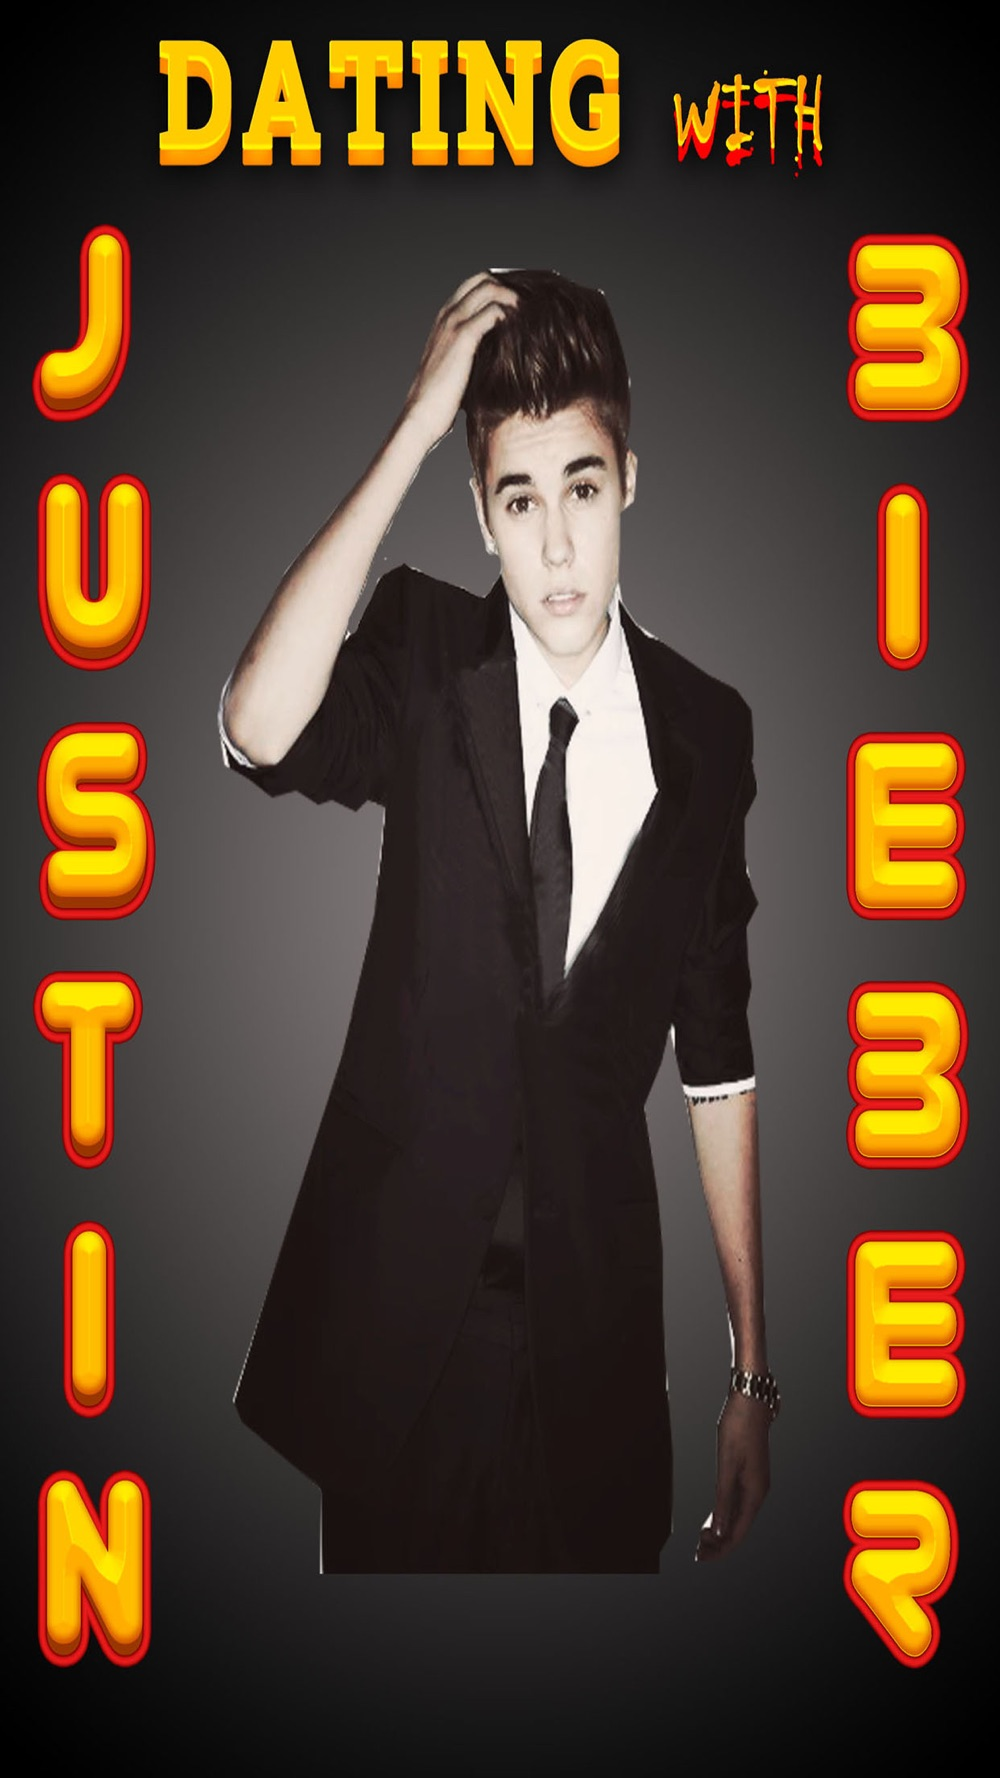 Aª Dating Justin Bieber edition free- photobooth with crowdstar for woman's day Cheat Codes